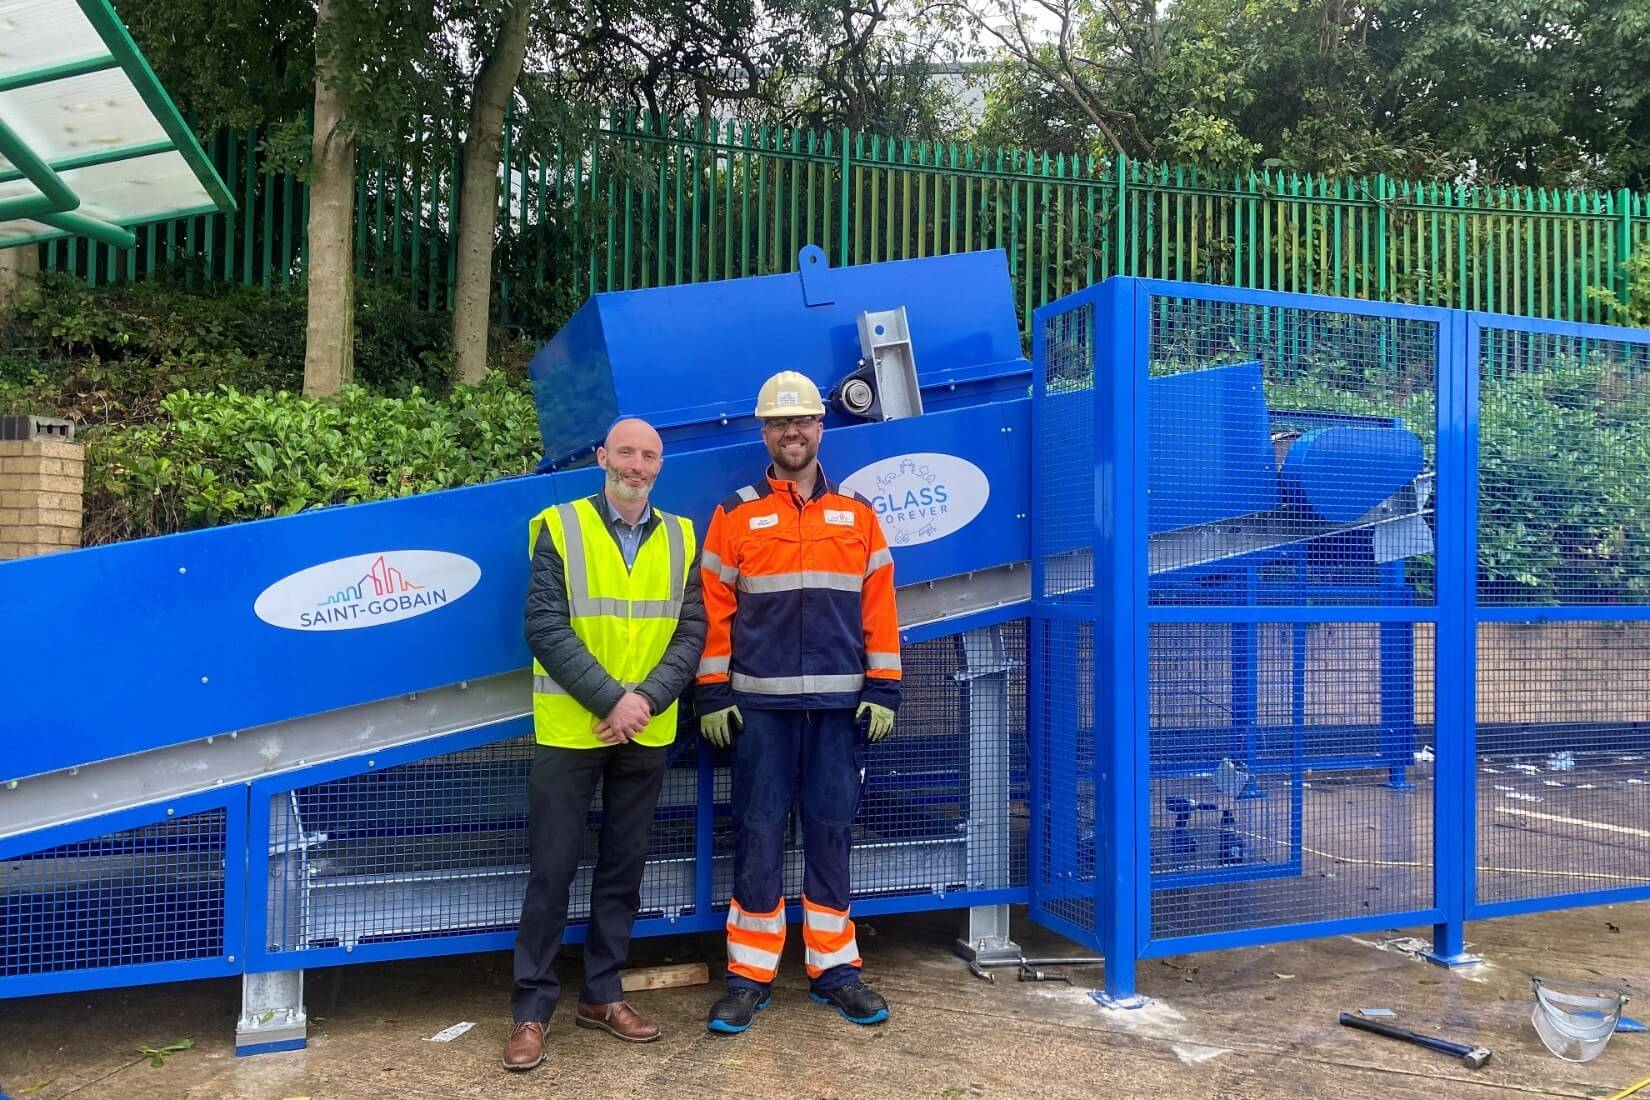 Morley Glass triples post-consumer glass recycling capacity